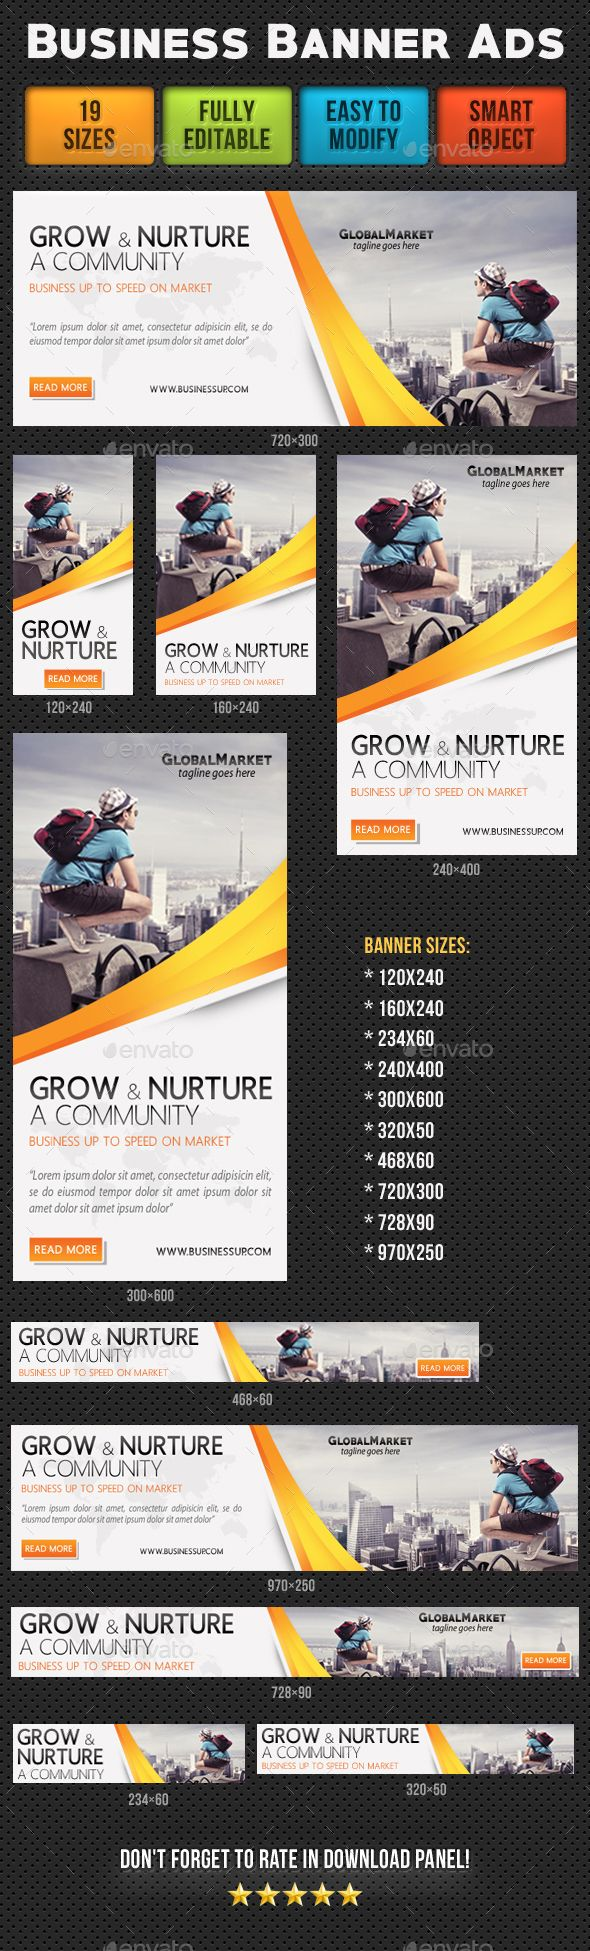 Corporate Business Banner Ads V1 — Photoshop PSD #banners #web banners • Available here → https://graphicriver.net/item/corporate-business-banner-ads-v1/18398955?ref=pxcr